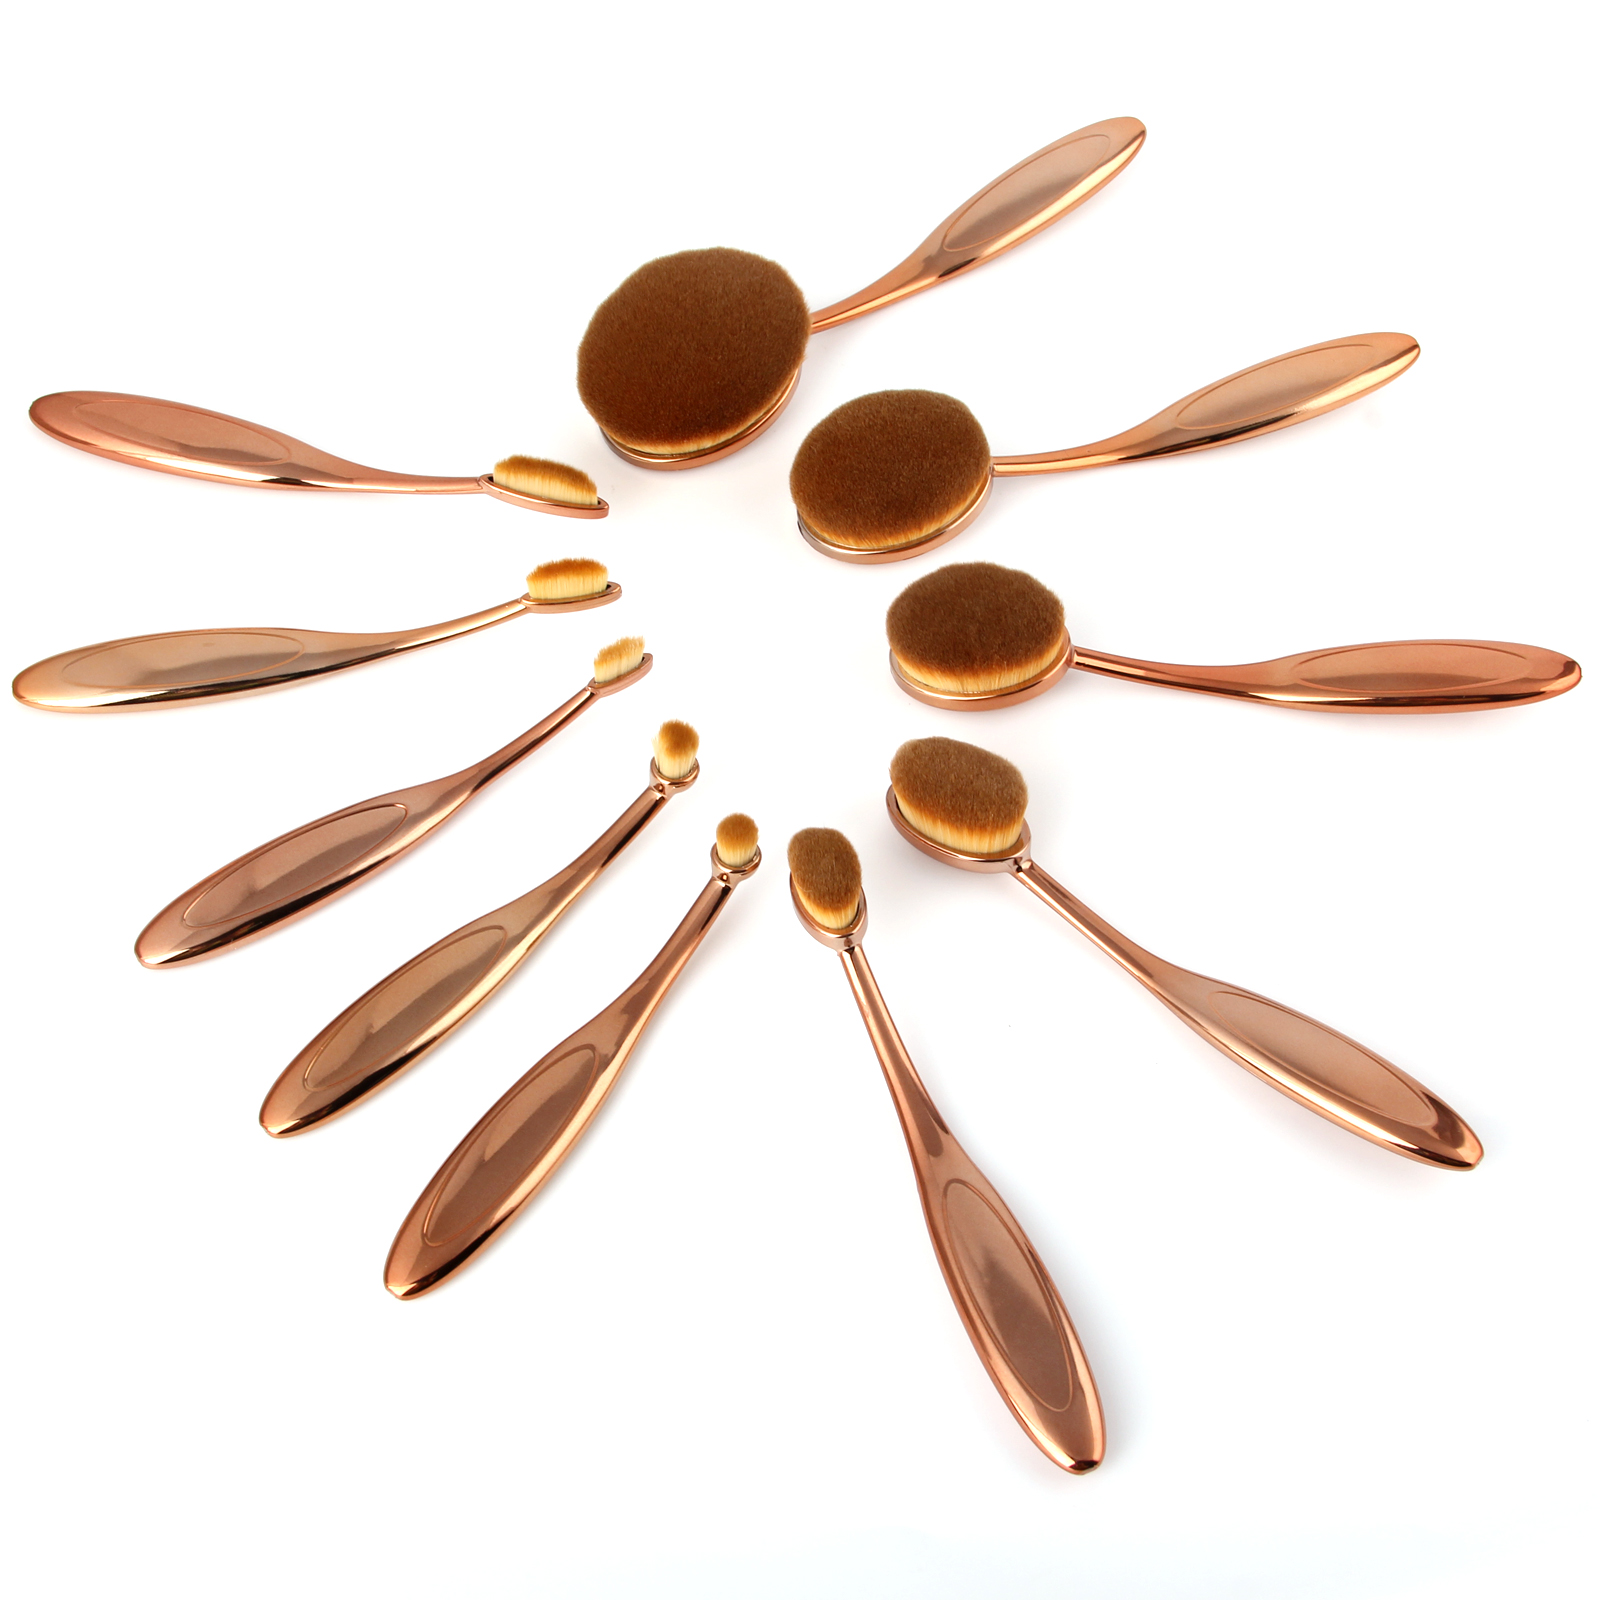 10pcs Rose Gold Toothbrush Shape Oval Makeup Brush Set Face foundation cream Powder Make Up